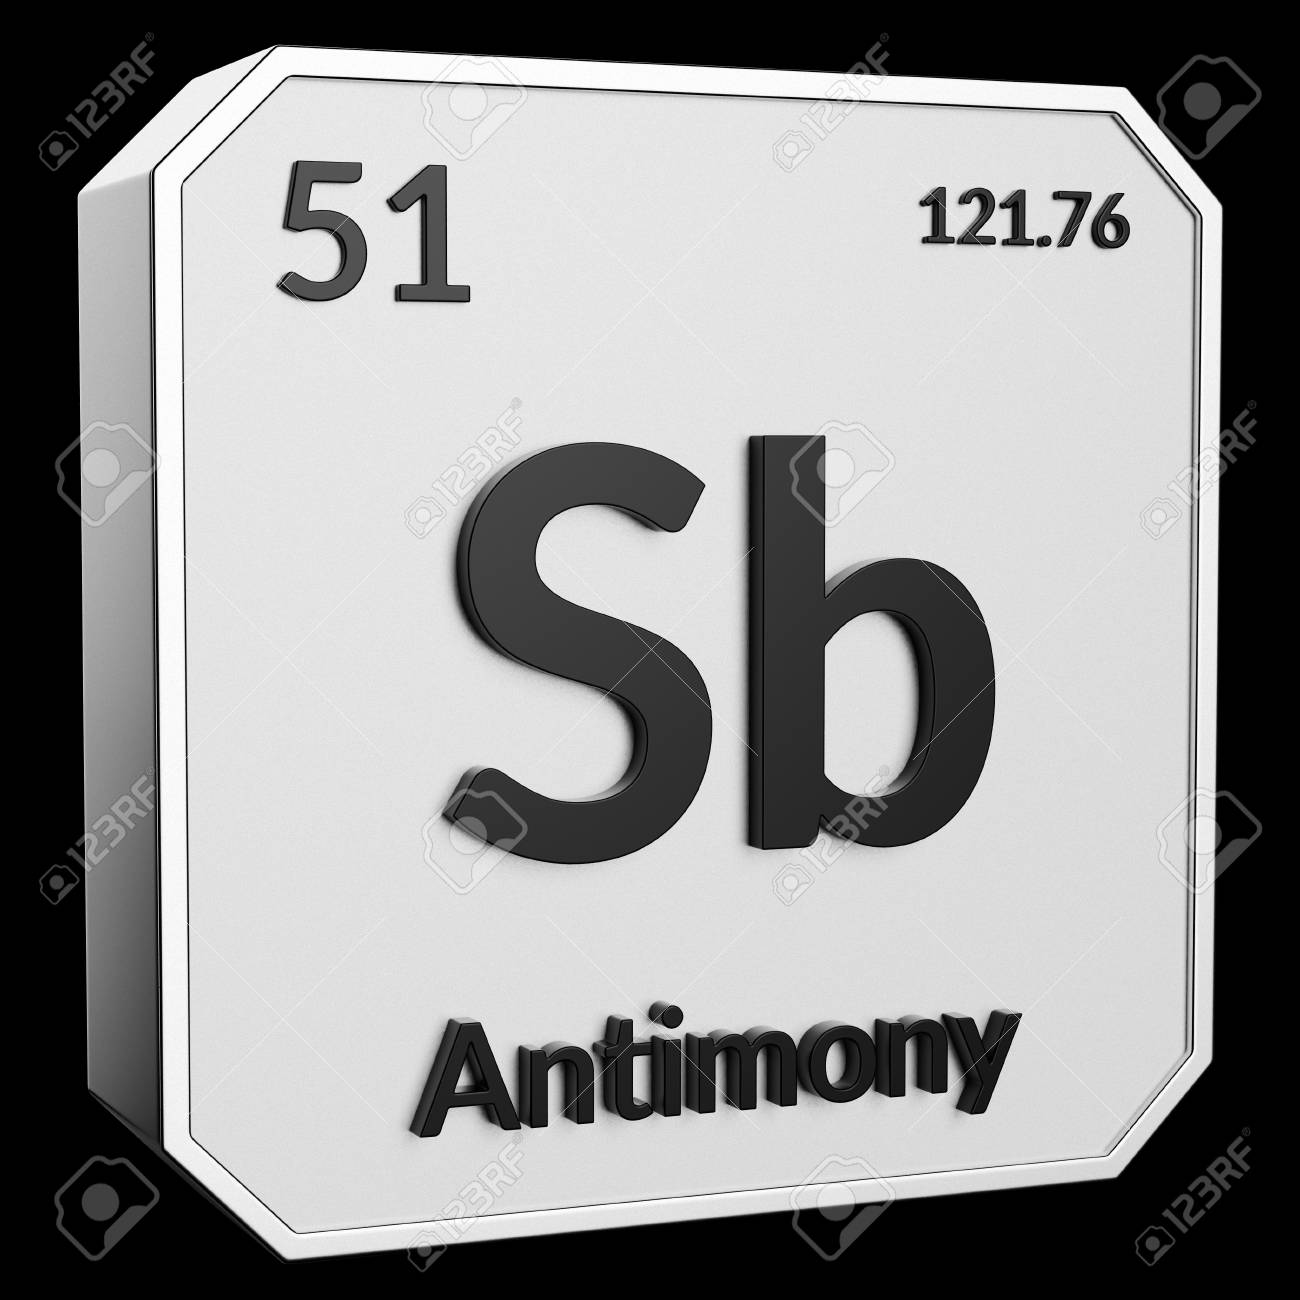 3d Text Of Chemical Element Antimony Its Atomic Weight Periodic